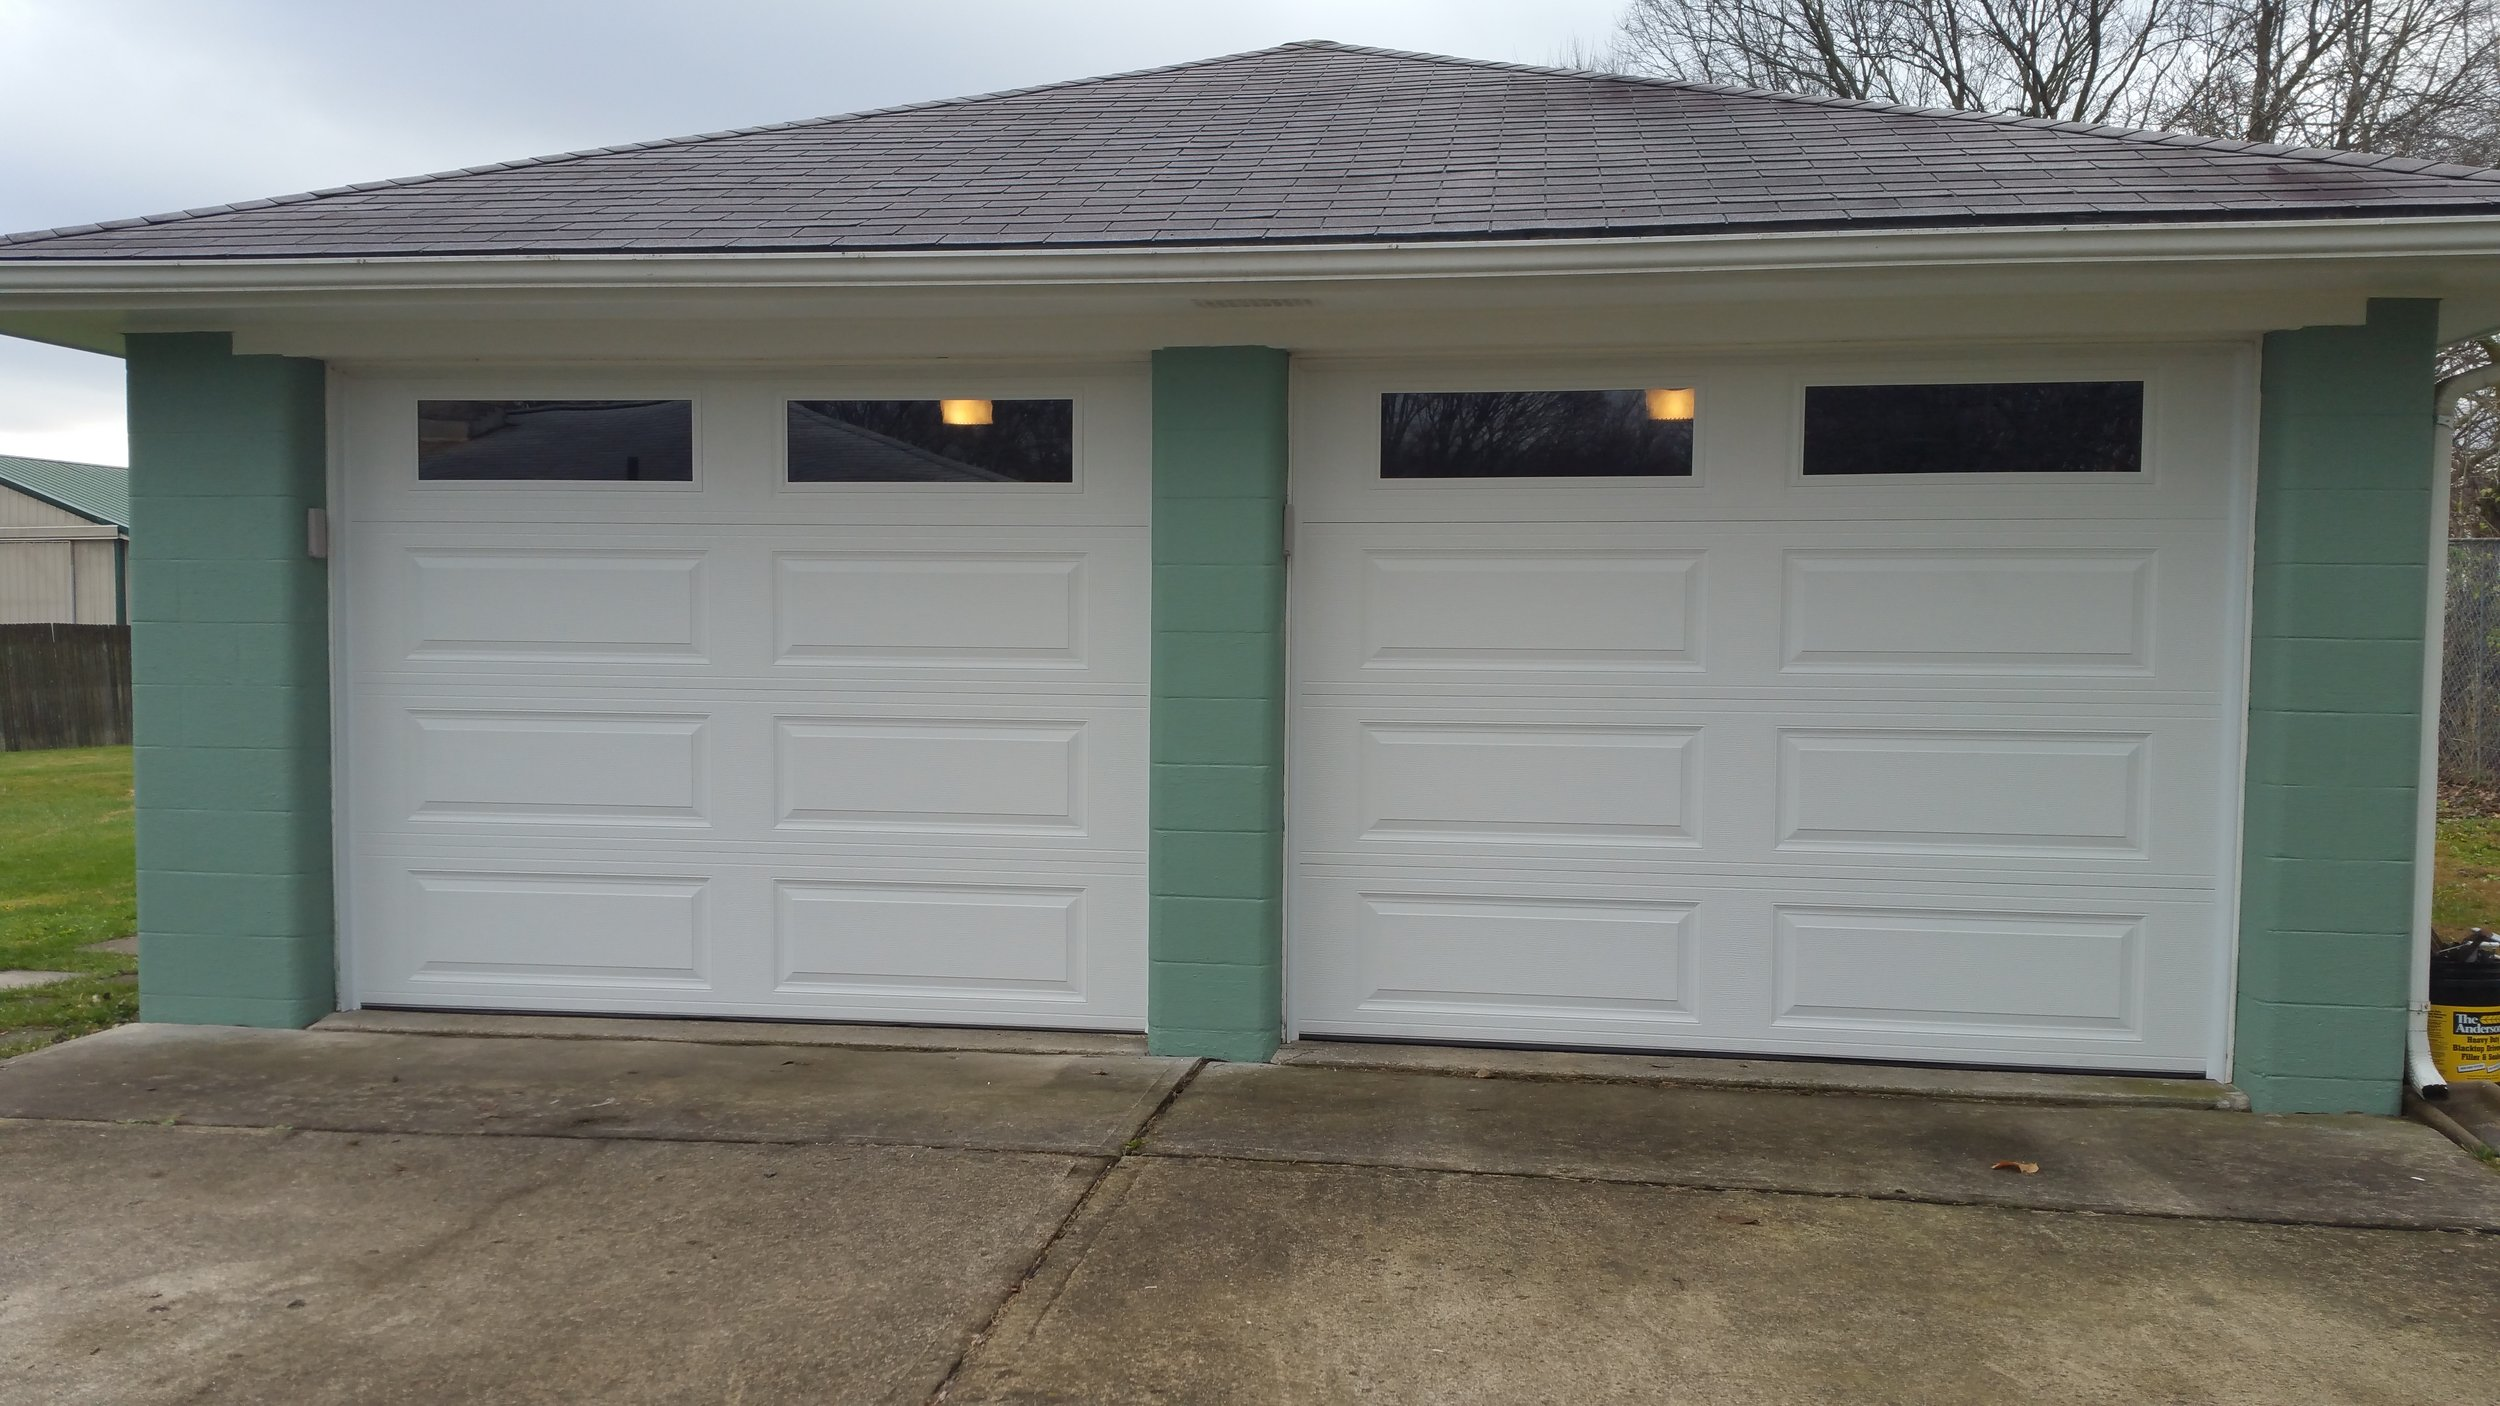 New door install Canal Winchester Oh.